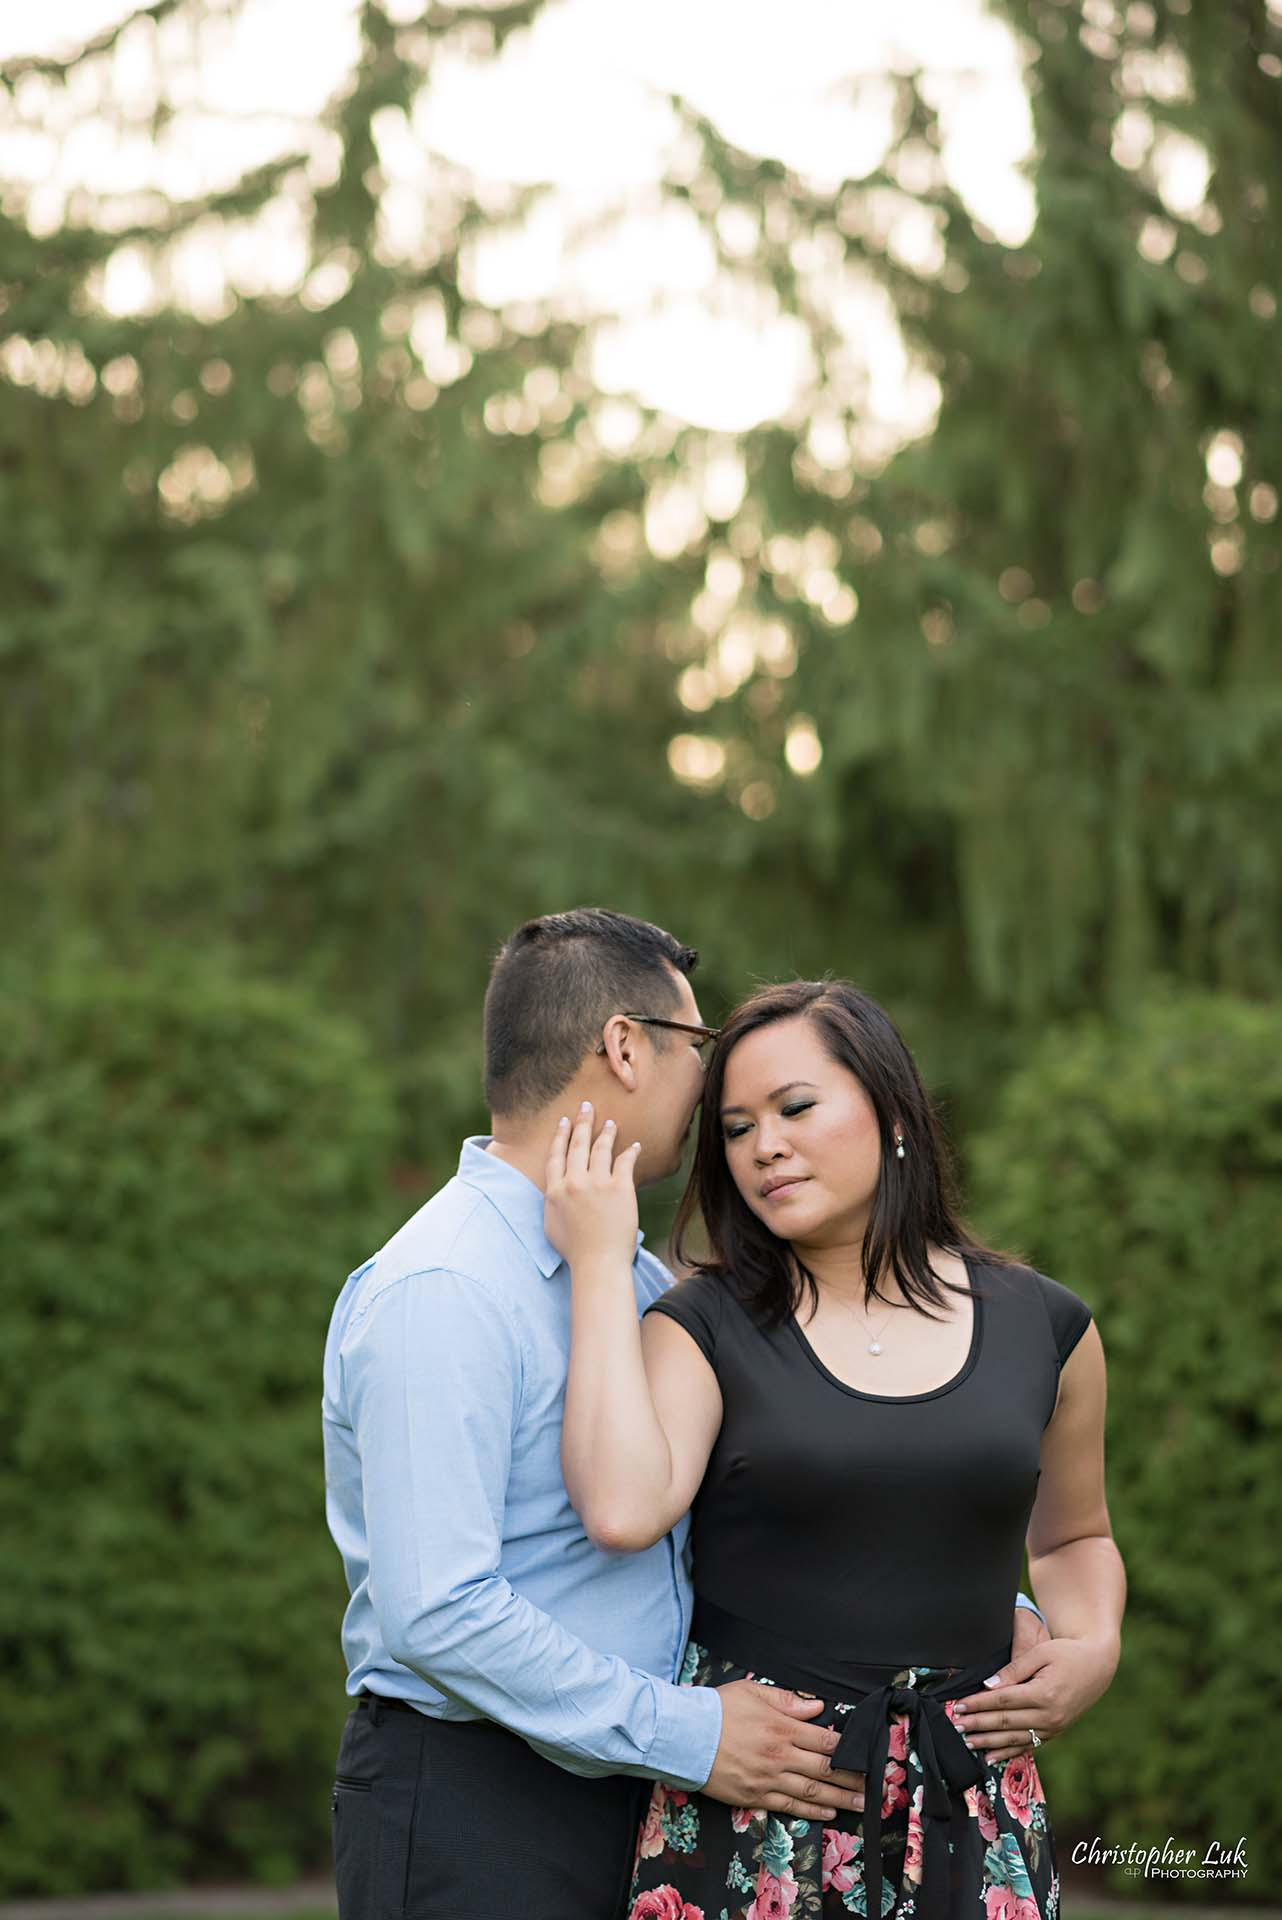 Christopher Luk Toronto Wedding Family Event Corporate Commercial Headshot Photographer Edith Jeff Engagement Session Alexander Muir Memorial Gardens Park MidTown Photo Location Natural Candid Photojournalistic - Bride and Groom Holding Each Other Together Sweet Quiet Moment